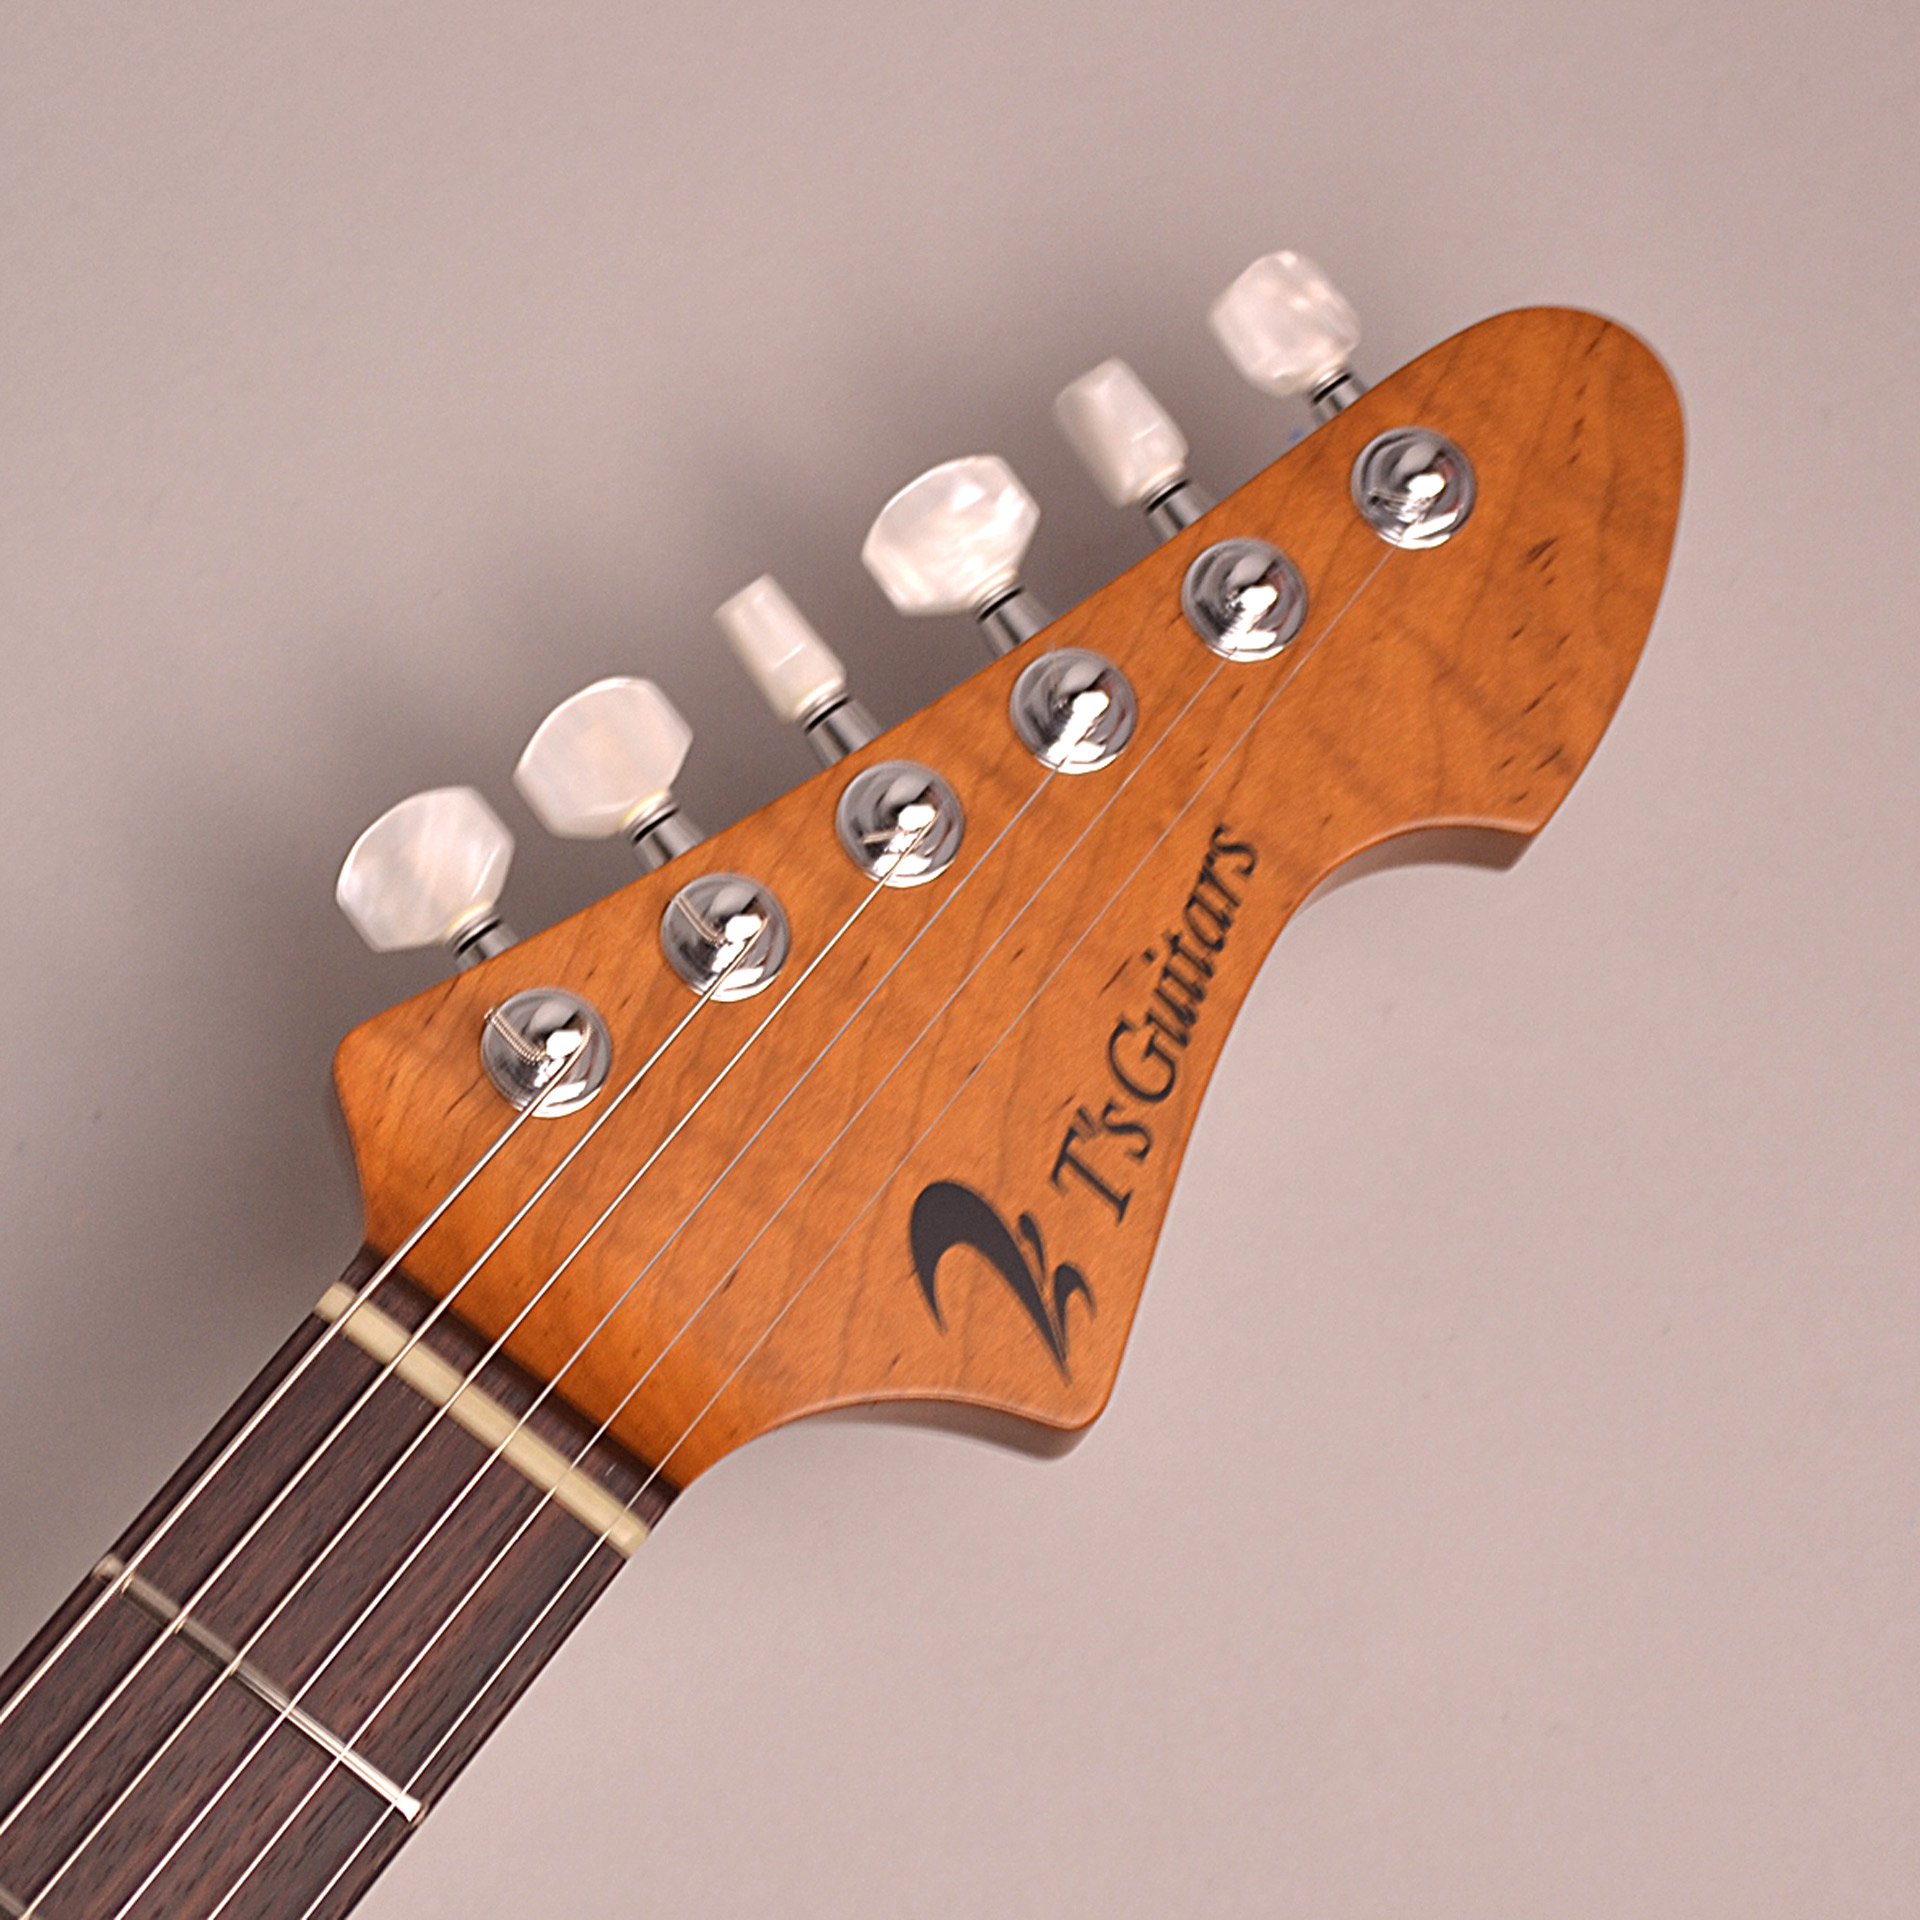 DST-Classic24F Roasted Flame Maple Neckのヘッド裏-アップ画像